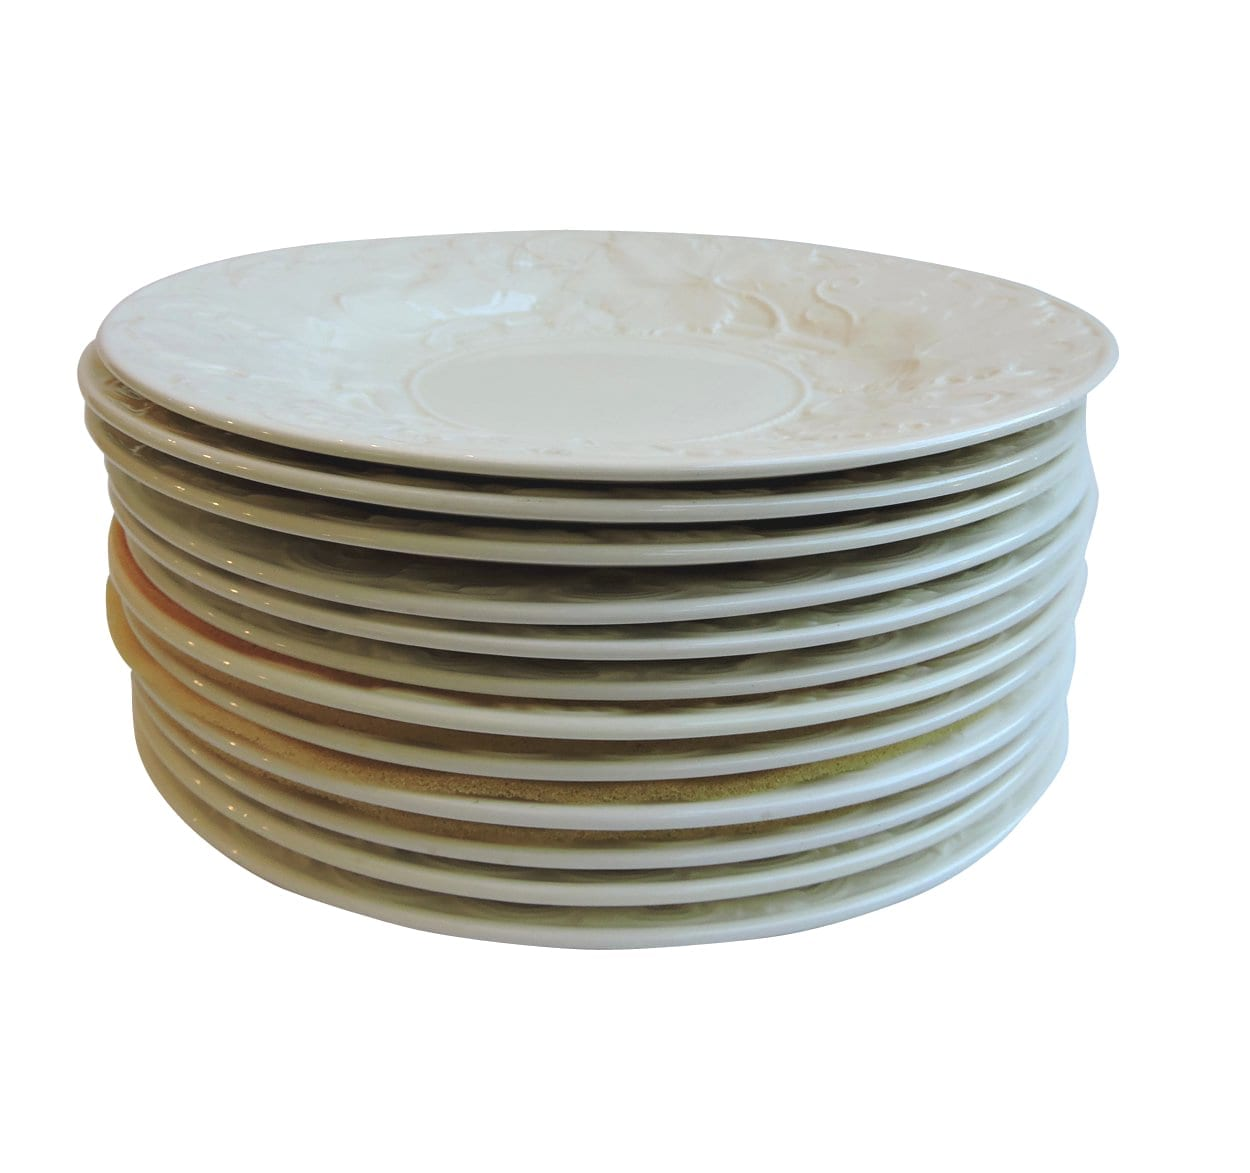 china - wedgwoodcreamwareplates-02-1.jpg